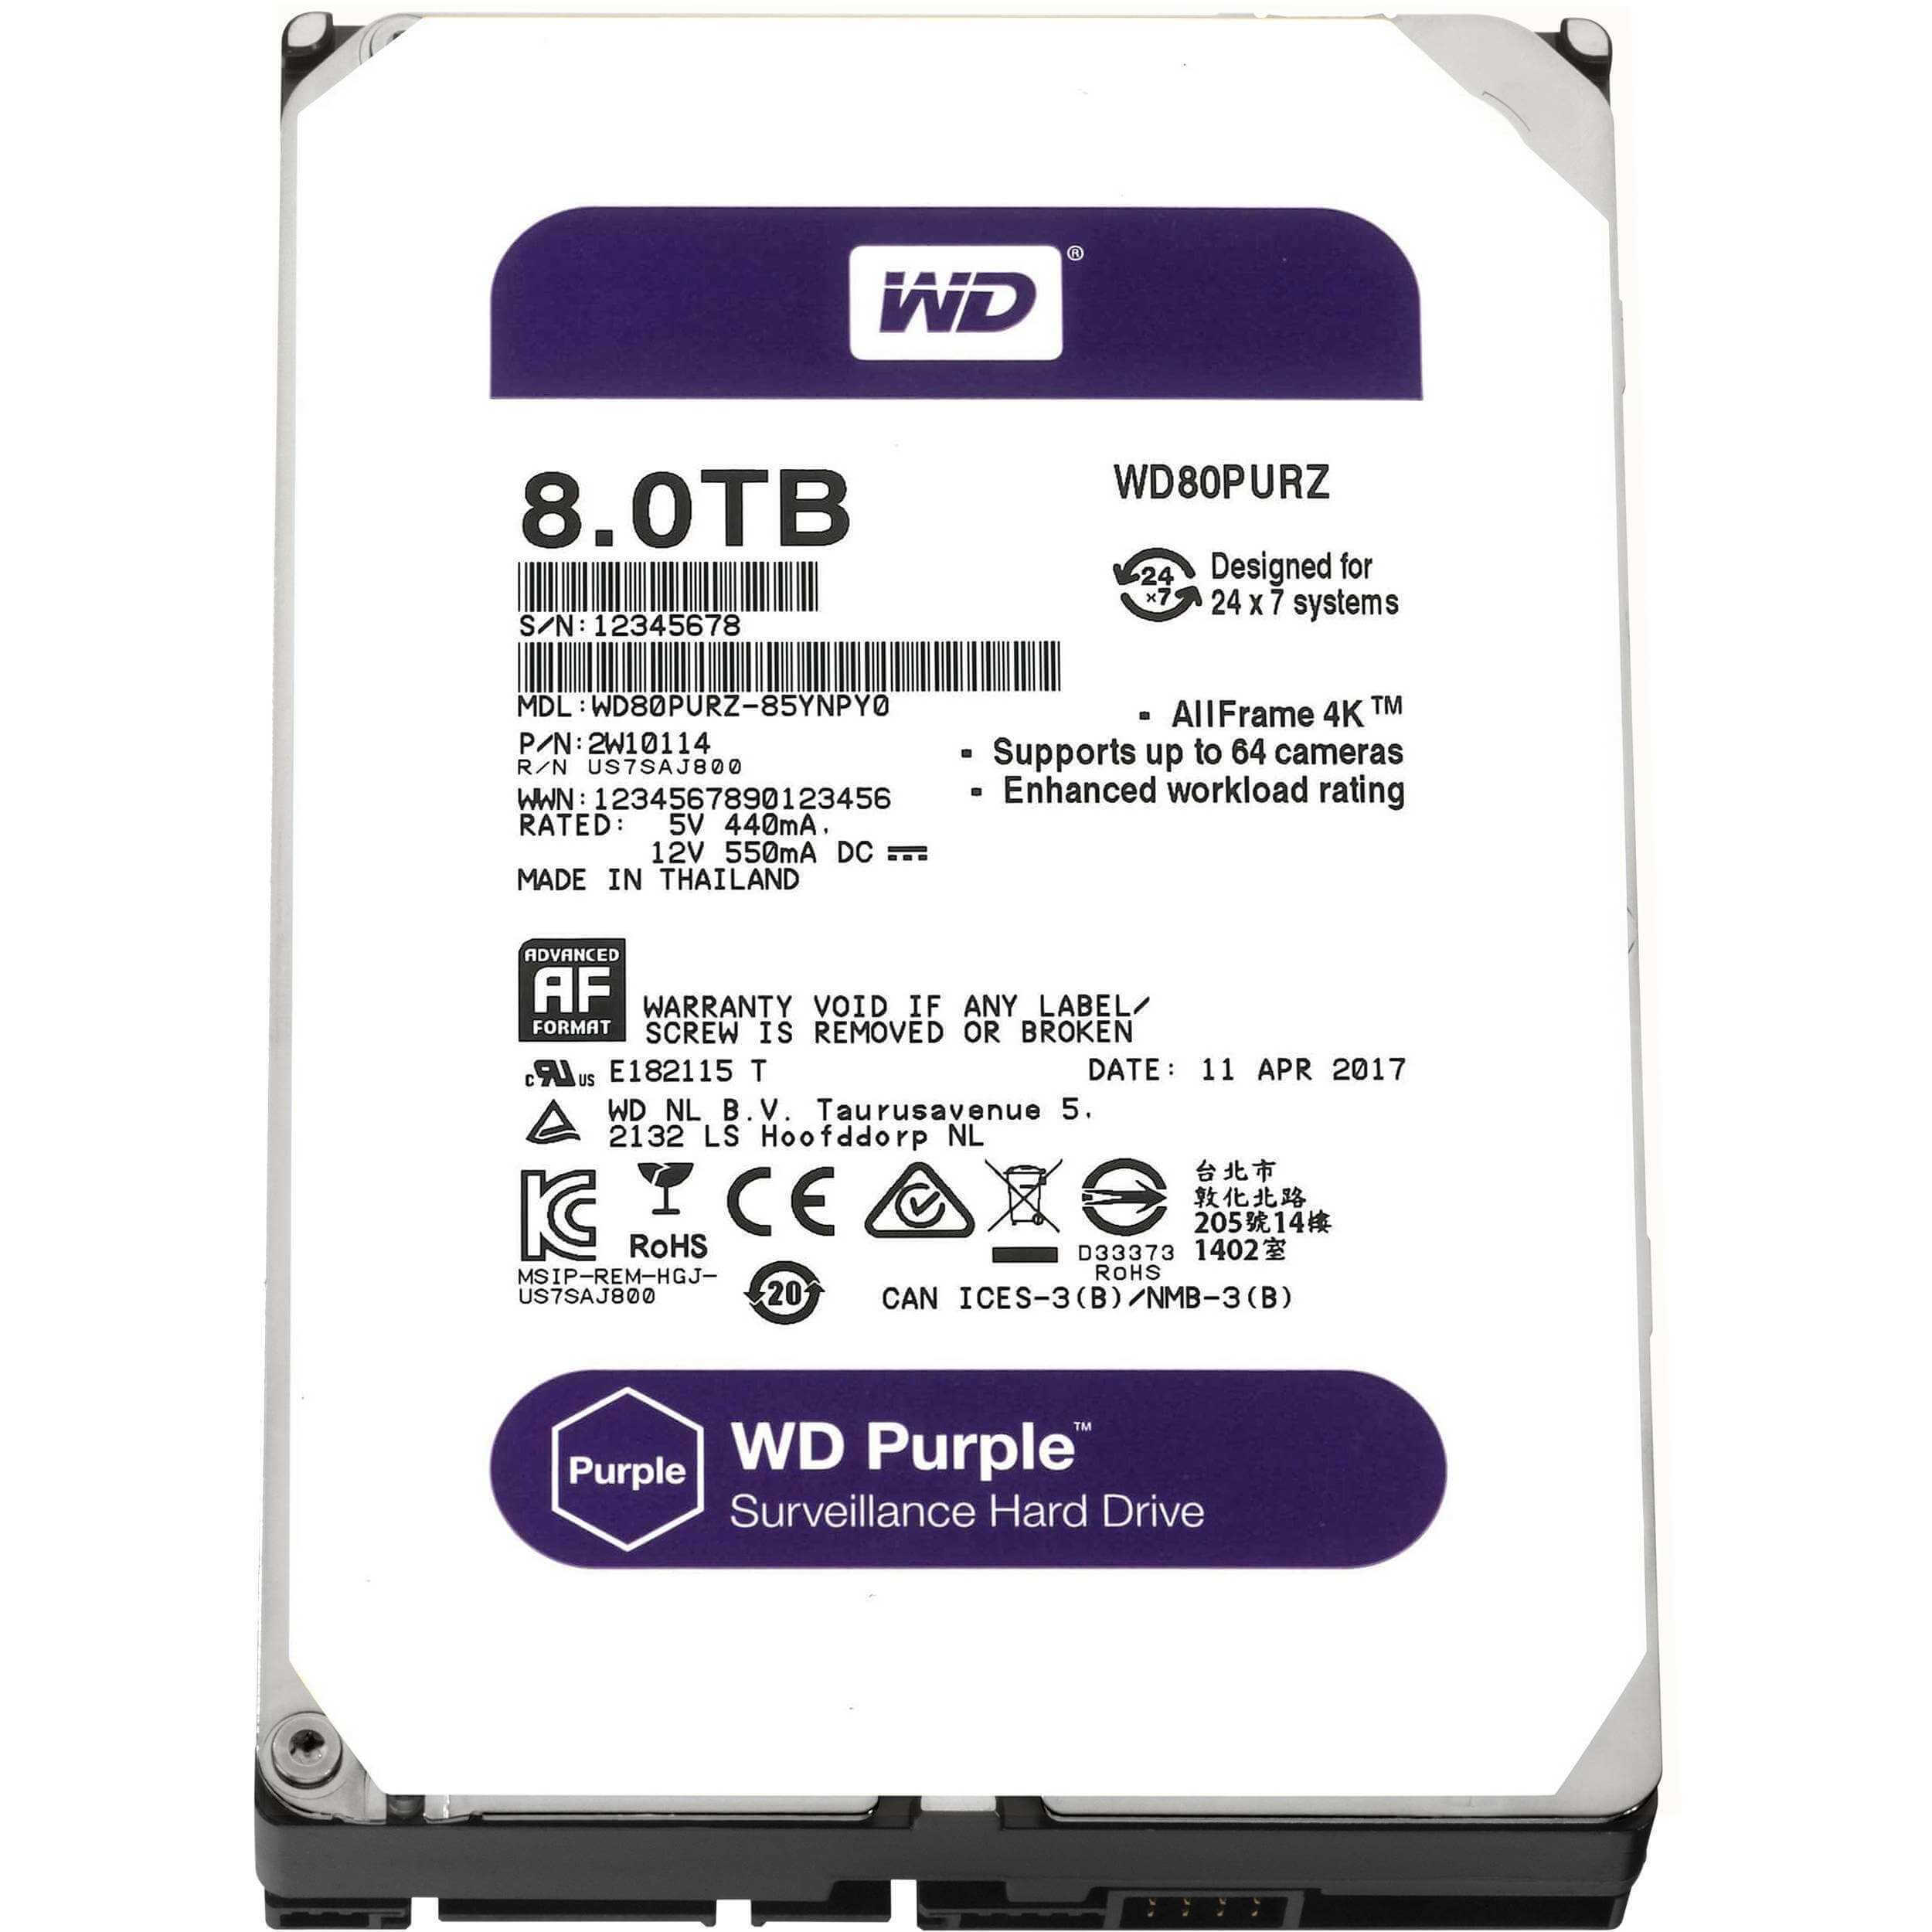 8TB WD Purple Surveillance Hard Disk Drive - 5400 RPM Class SATA 6 Gb/s 128MB Cache 3.5 Inch